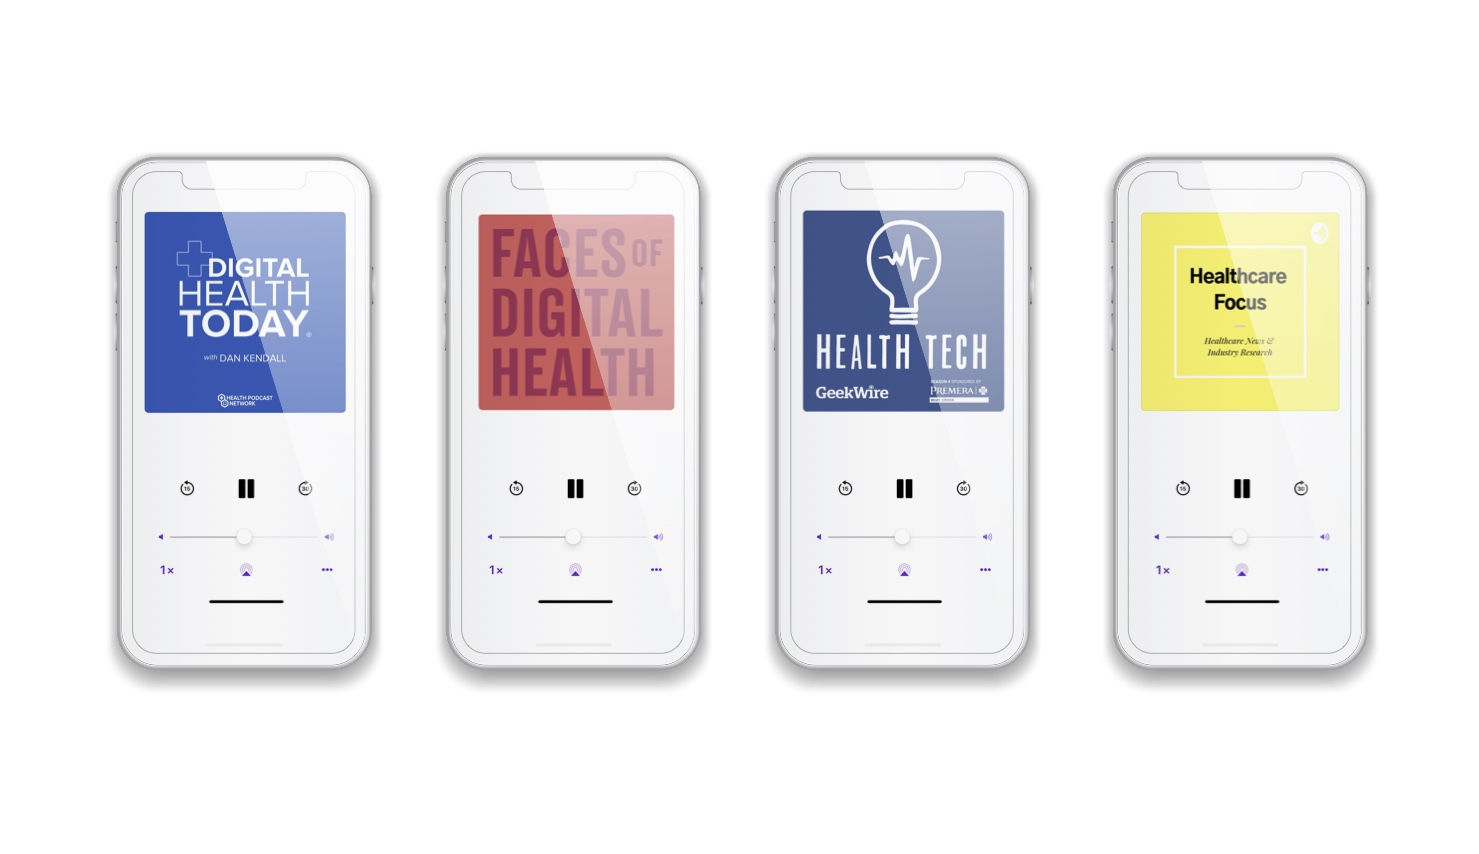 Healthcare podcasts faces of digital health geekwire focus